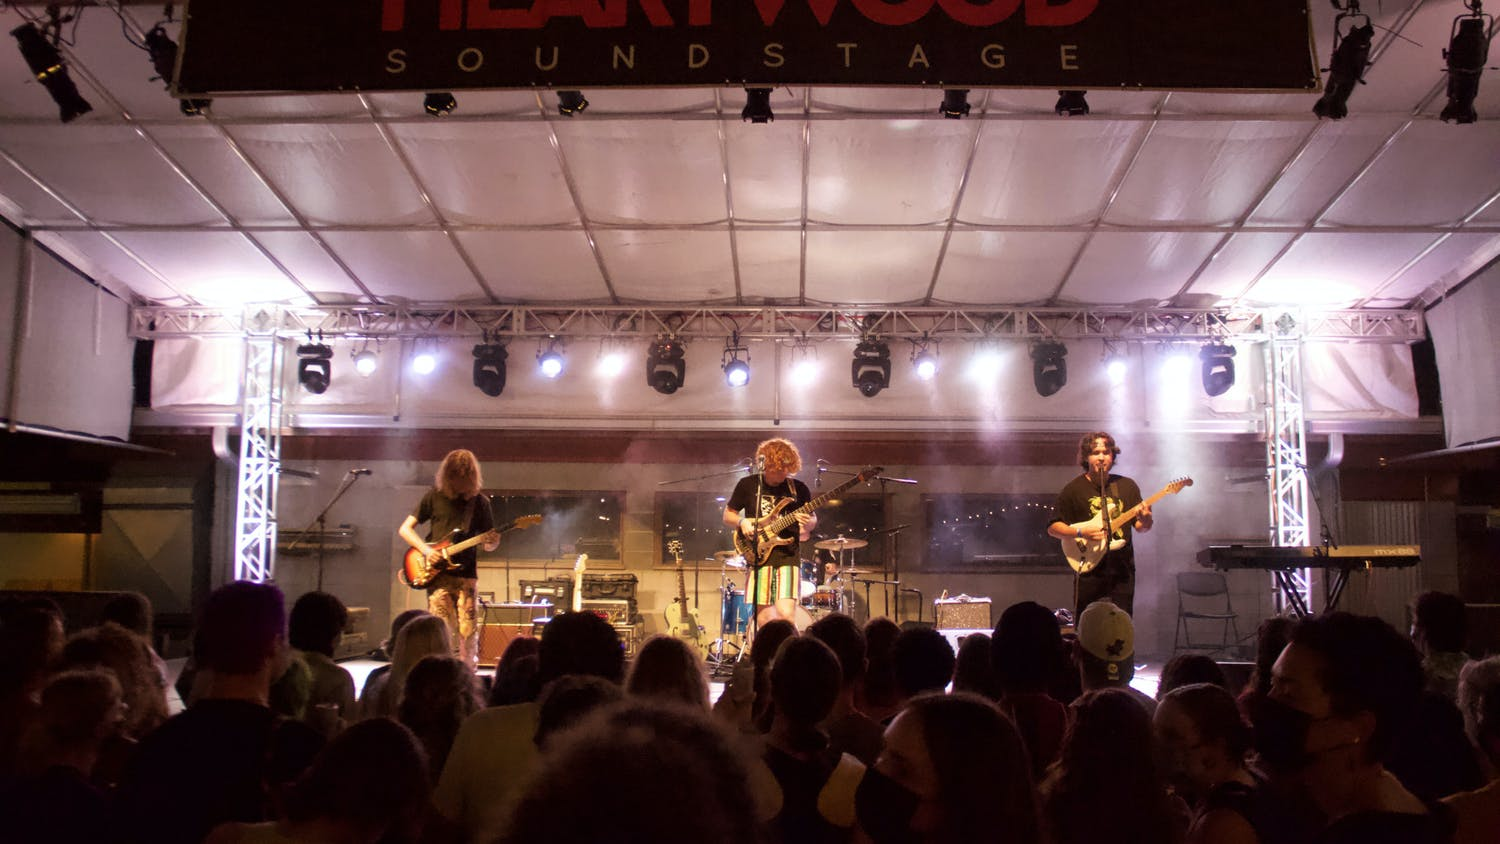 The Driptones perform during Back to School Fest Heartwood Soundstage on Saturday, Aug. 28, 2021. The venue hosted five indie bands to celebrate the start of a new school year.